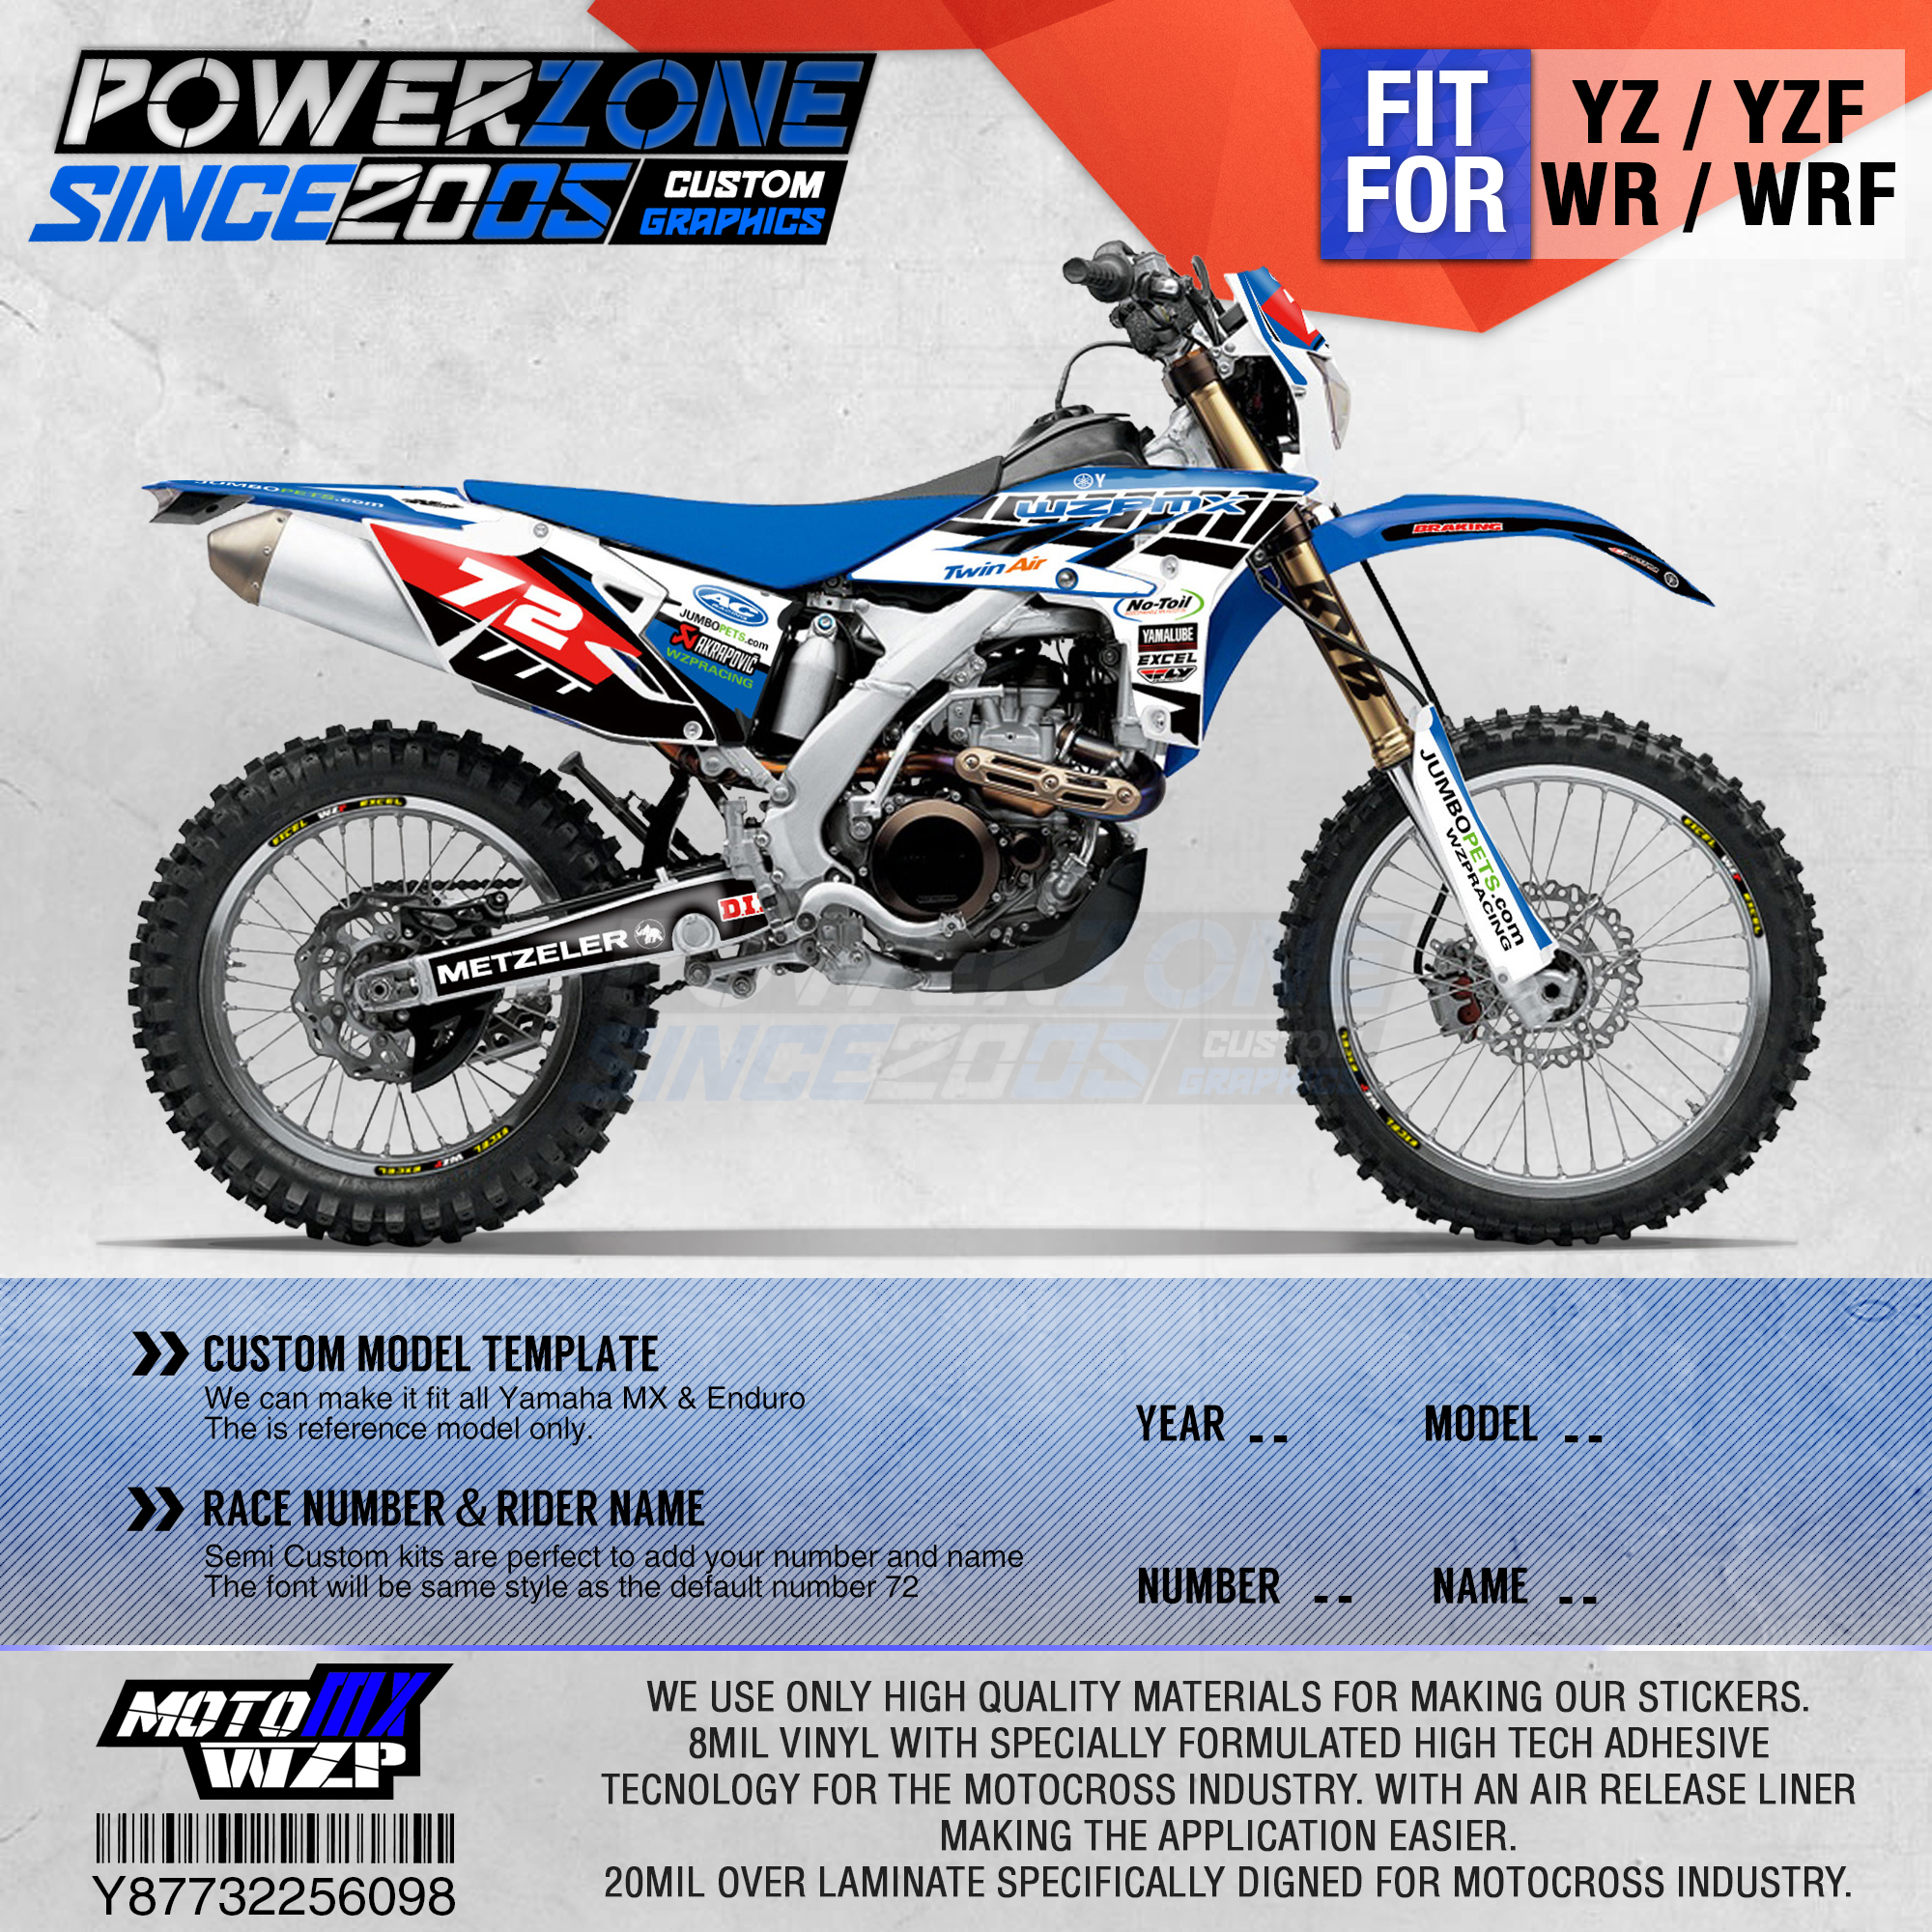 PowerZone Customized Team Graphics Backgrounds Decals 3M Custom <font><b>Stickers</b></font> For <font><b>YAMAHA</b></font> YZF250 2010-2013 <font><b>WR450F</b></font> 2012-2015 YZ WRF 098 image